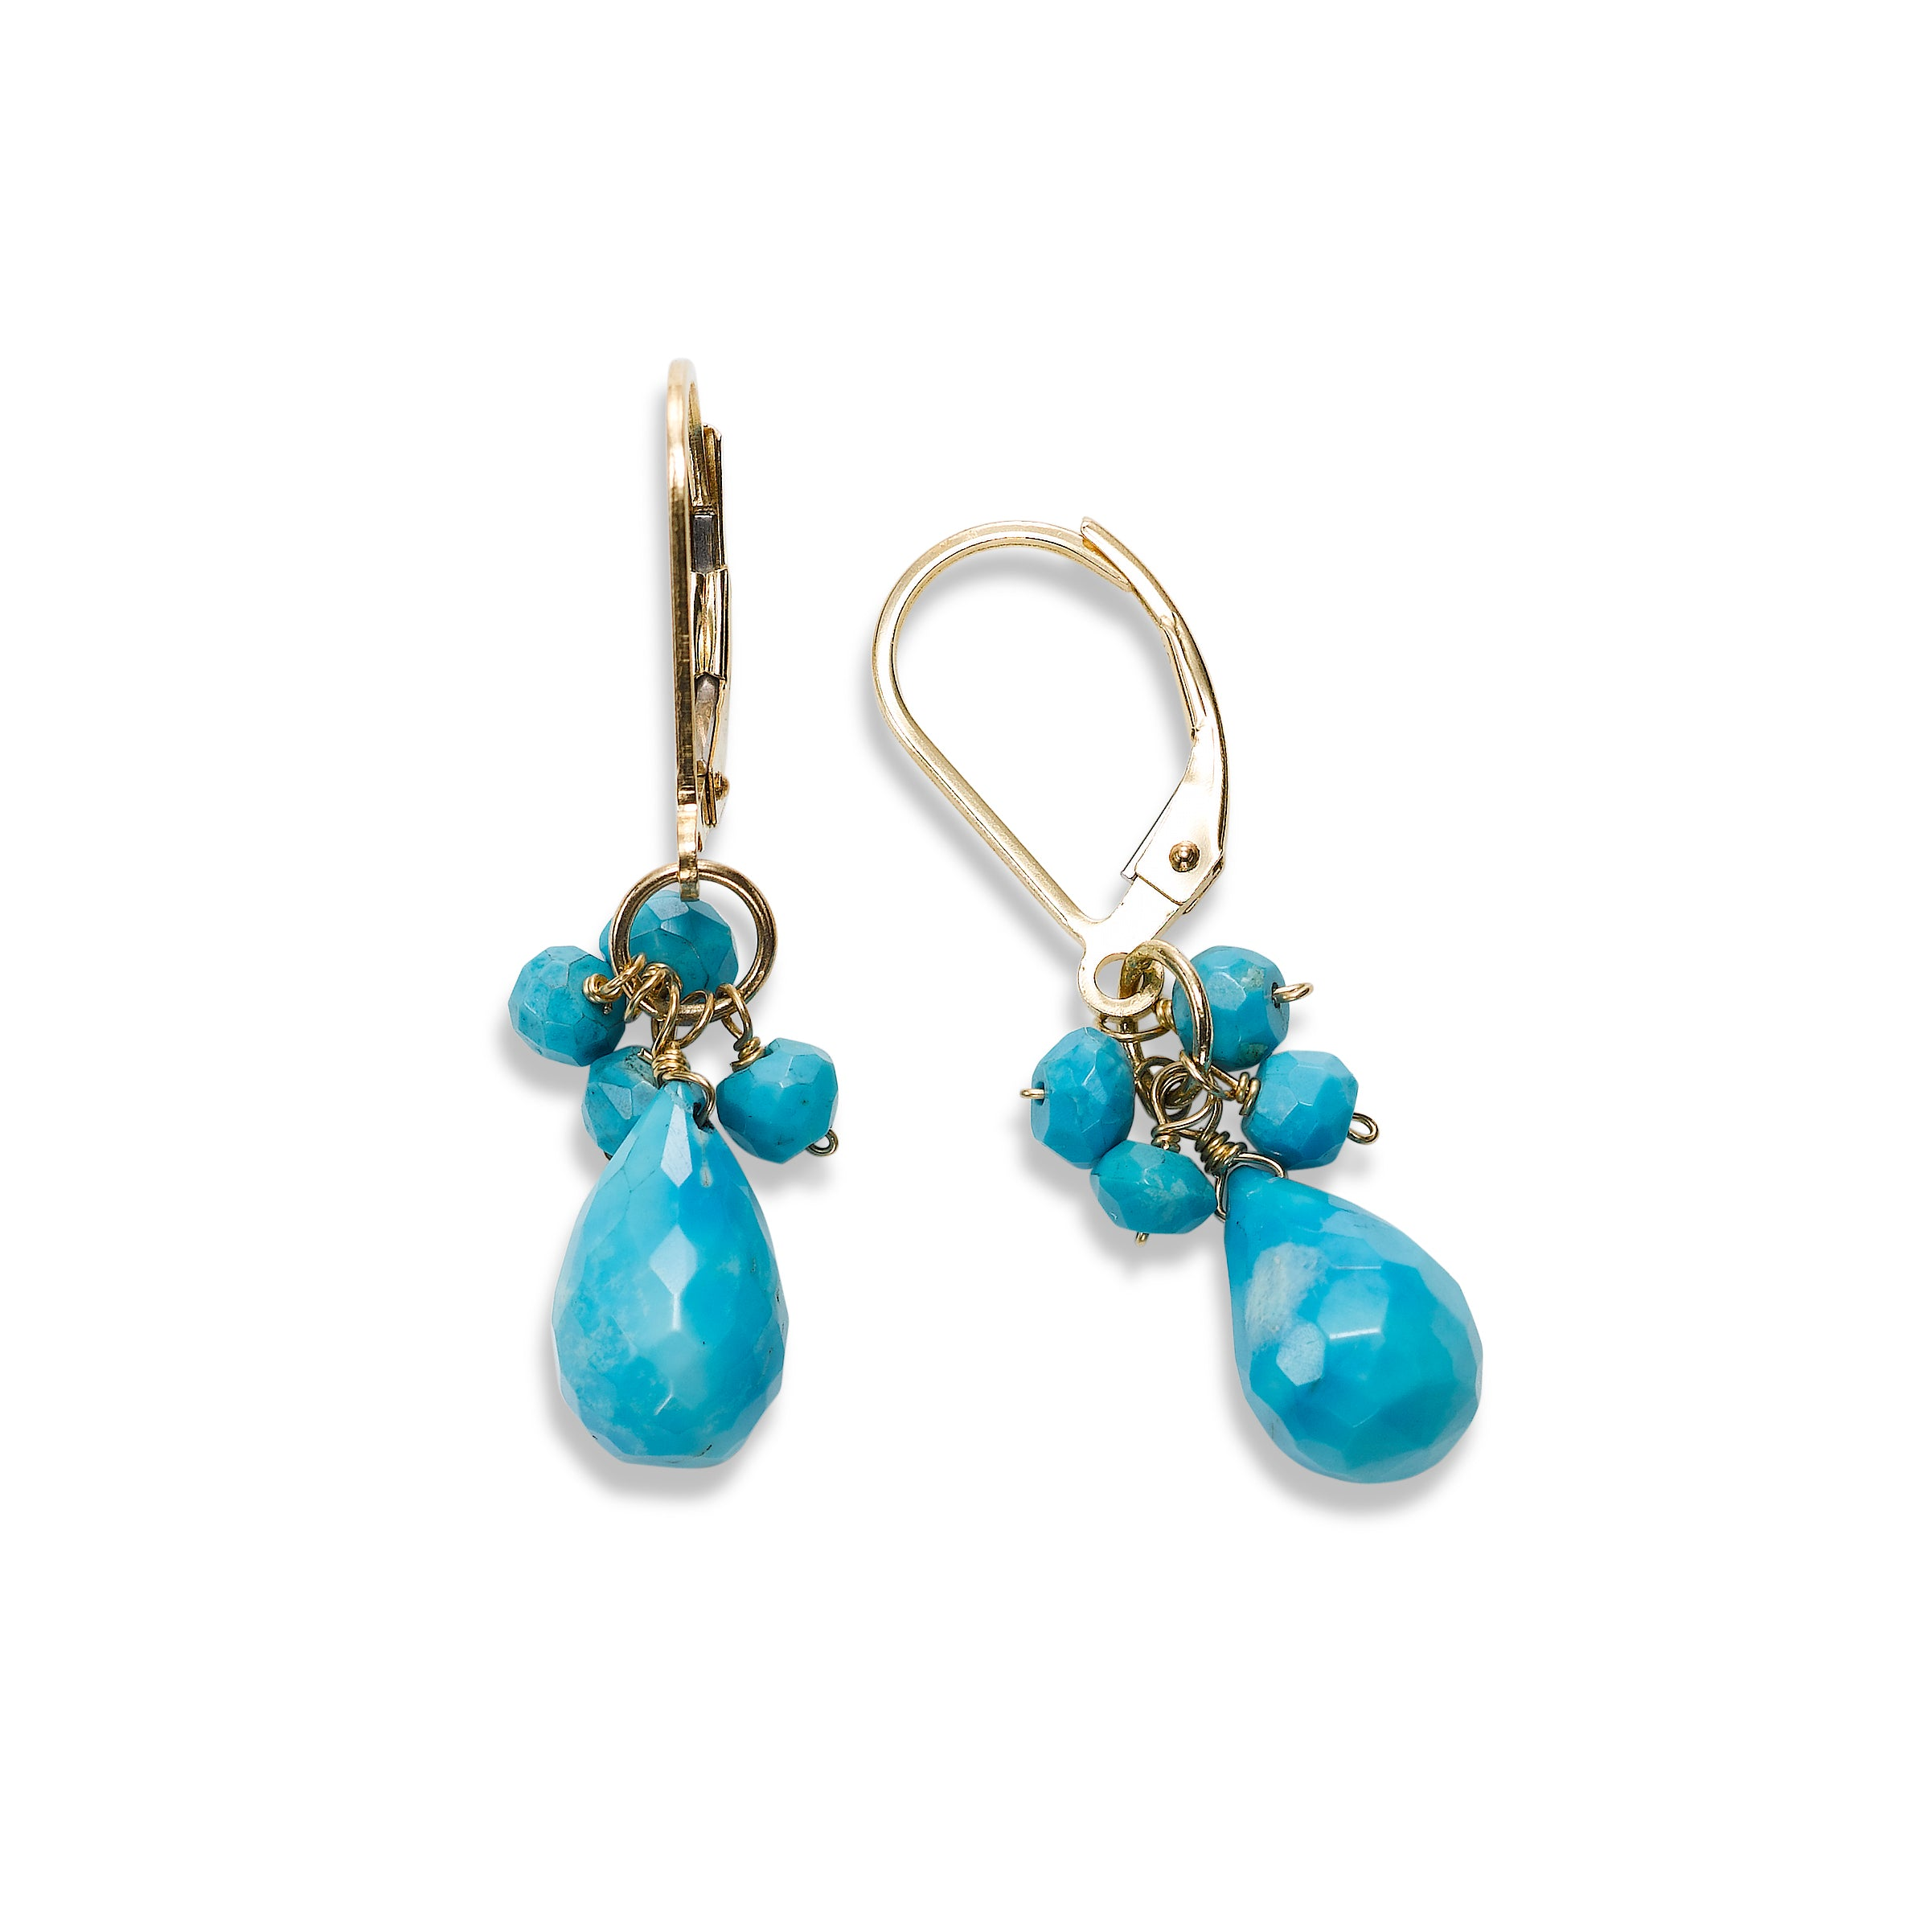 Turquoise Dangle Earrings, 14K Yellow Gold